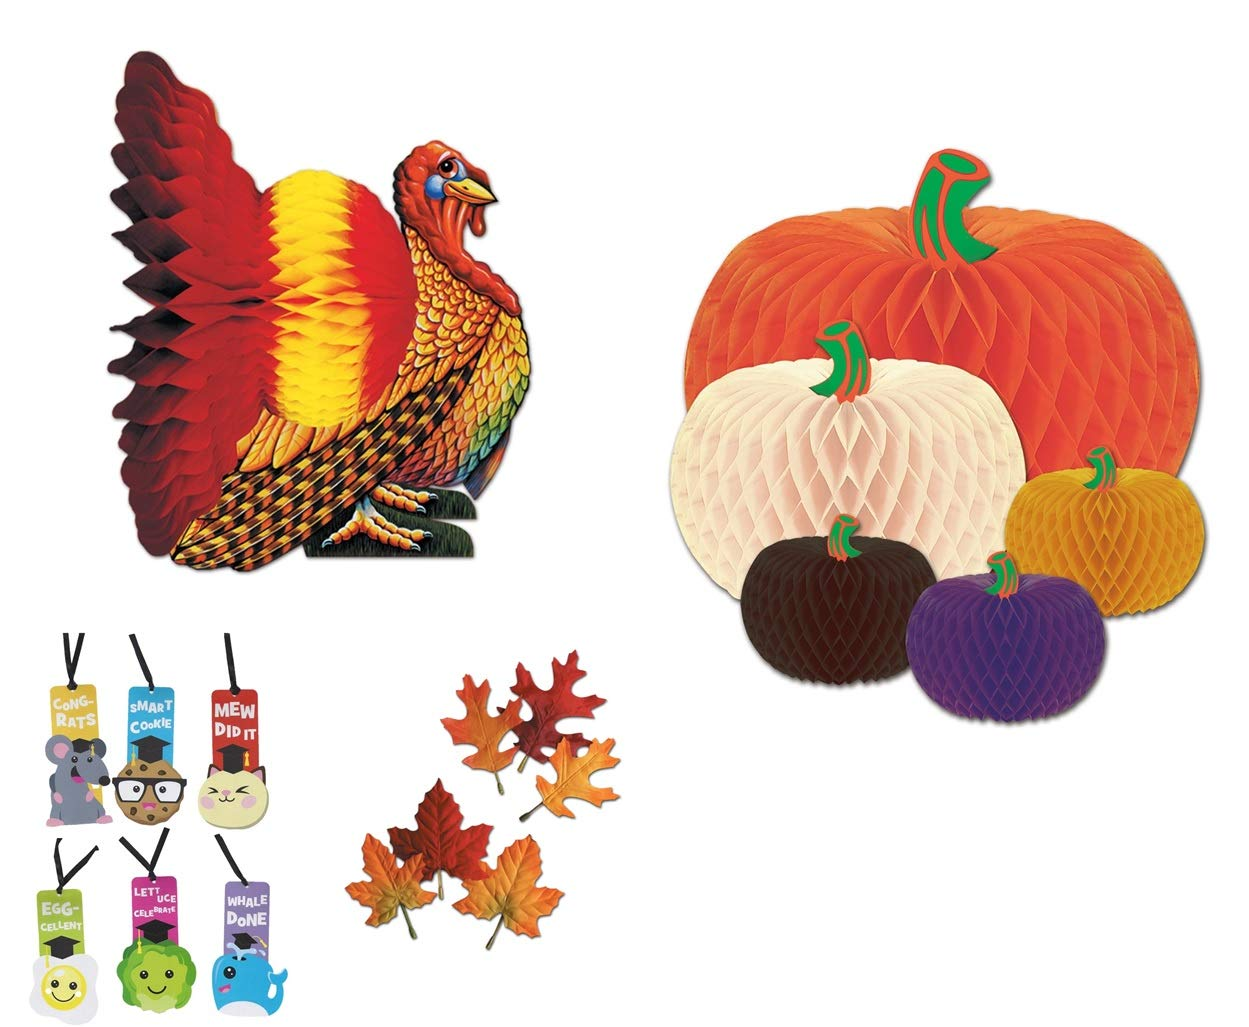 Party Thanksgiving Fall Autumn Table Decorating Kit by Beistle